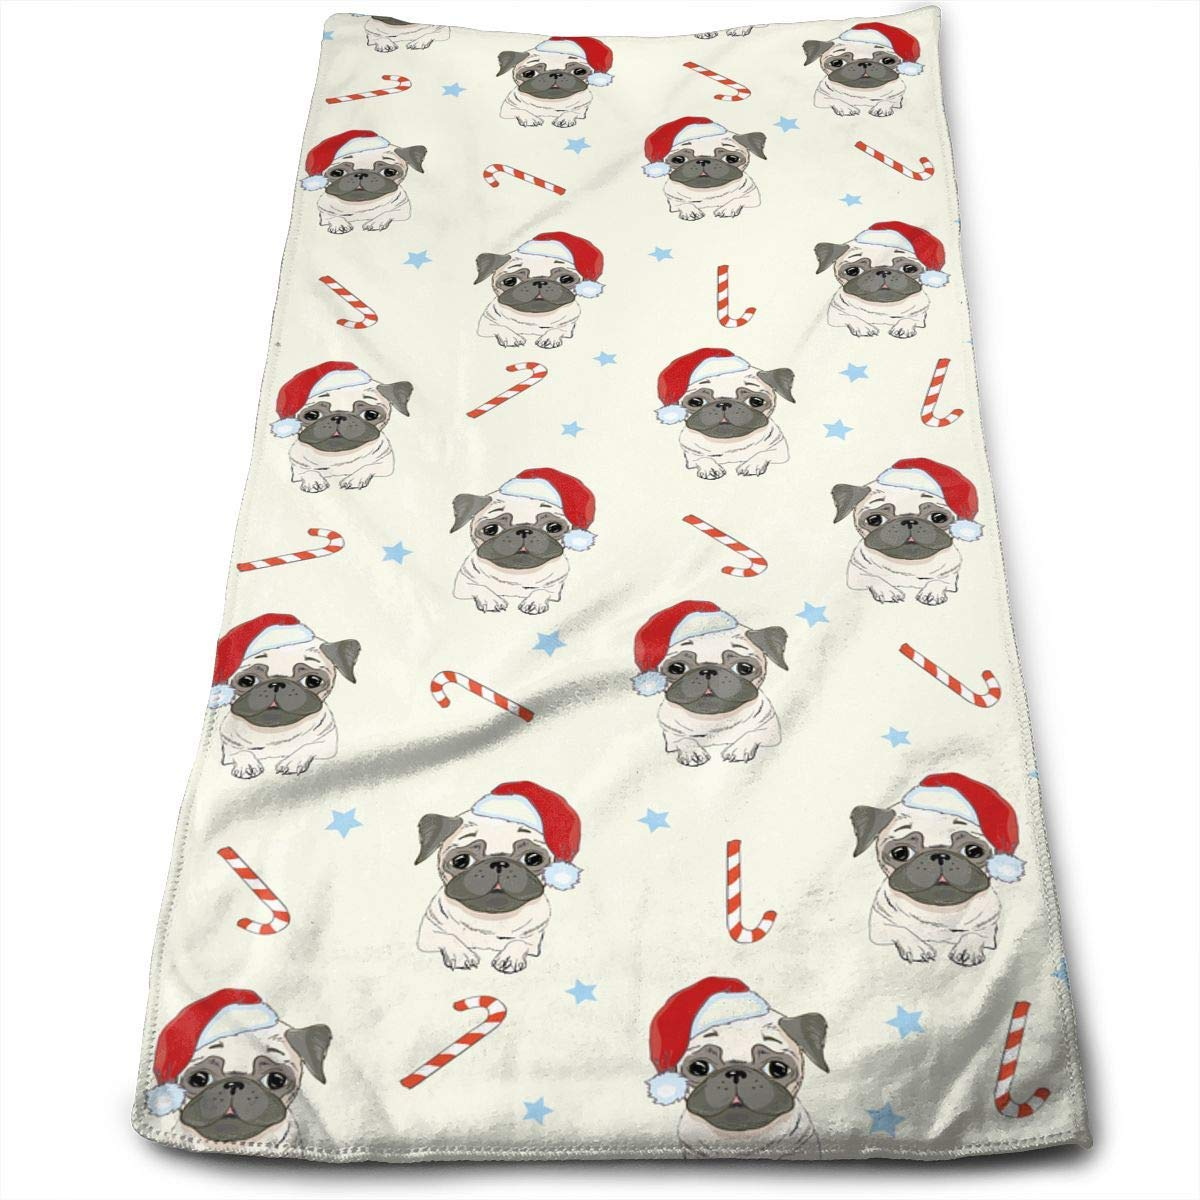 Pug Dog Pattern Classic Towels Bathroom Towels Sports Towel Microfiber Towels Hand Towels Perfect for Home, Bathrooms, Spa, Pool and Gym